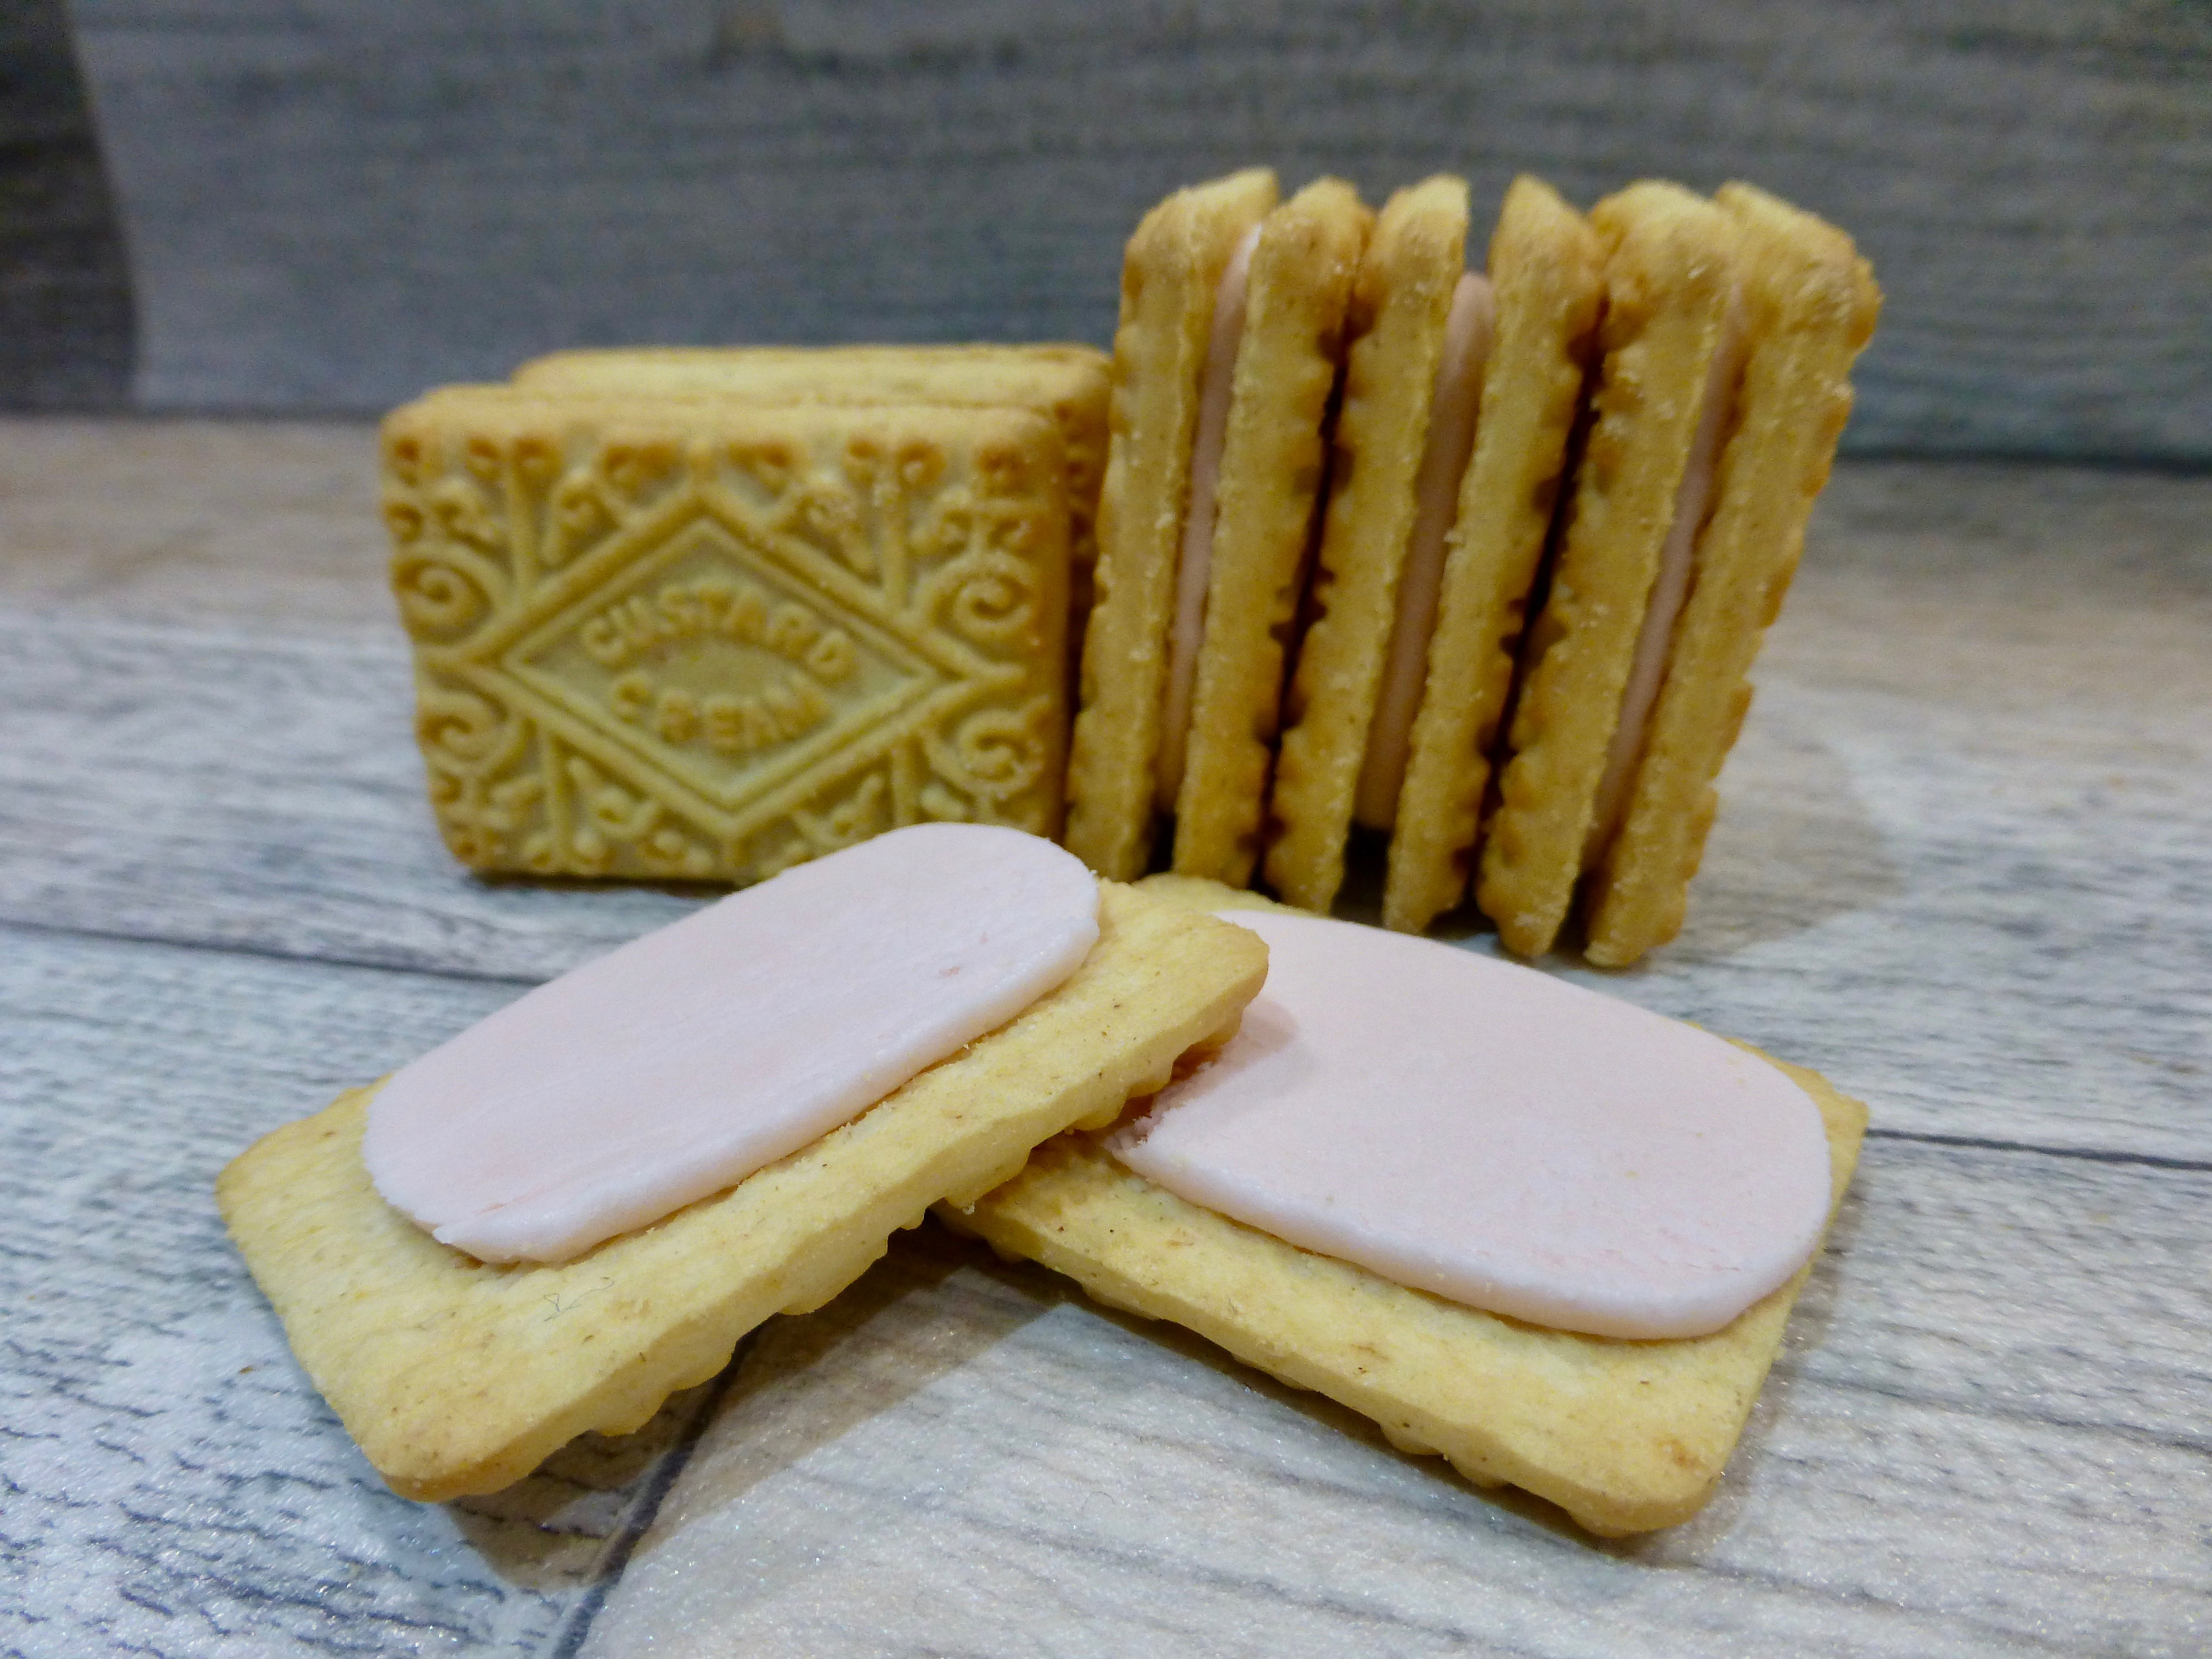 Tesco Rhubard and Custard Creams